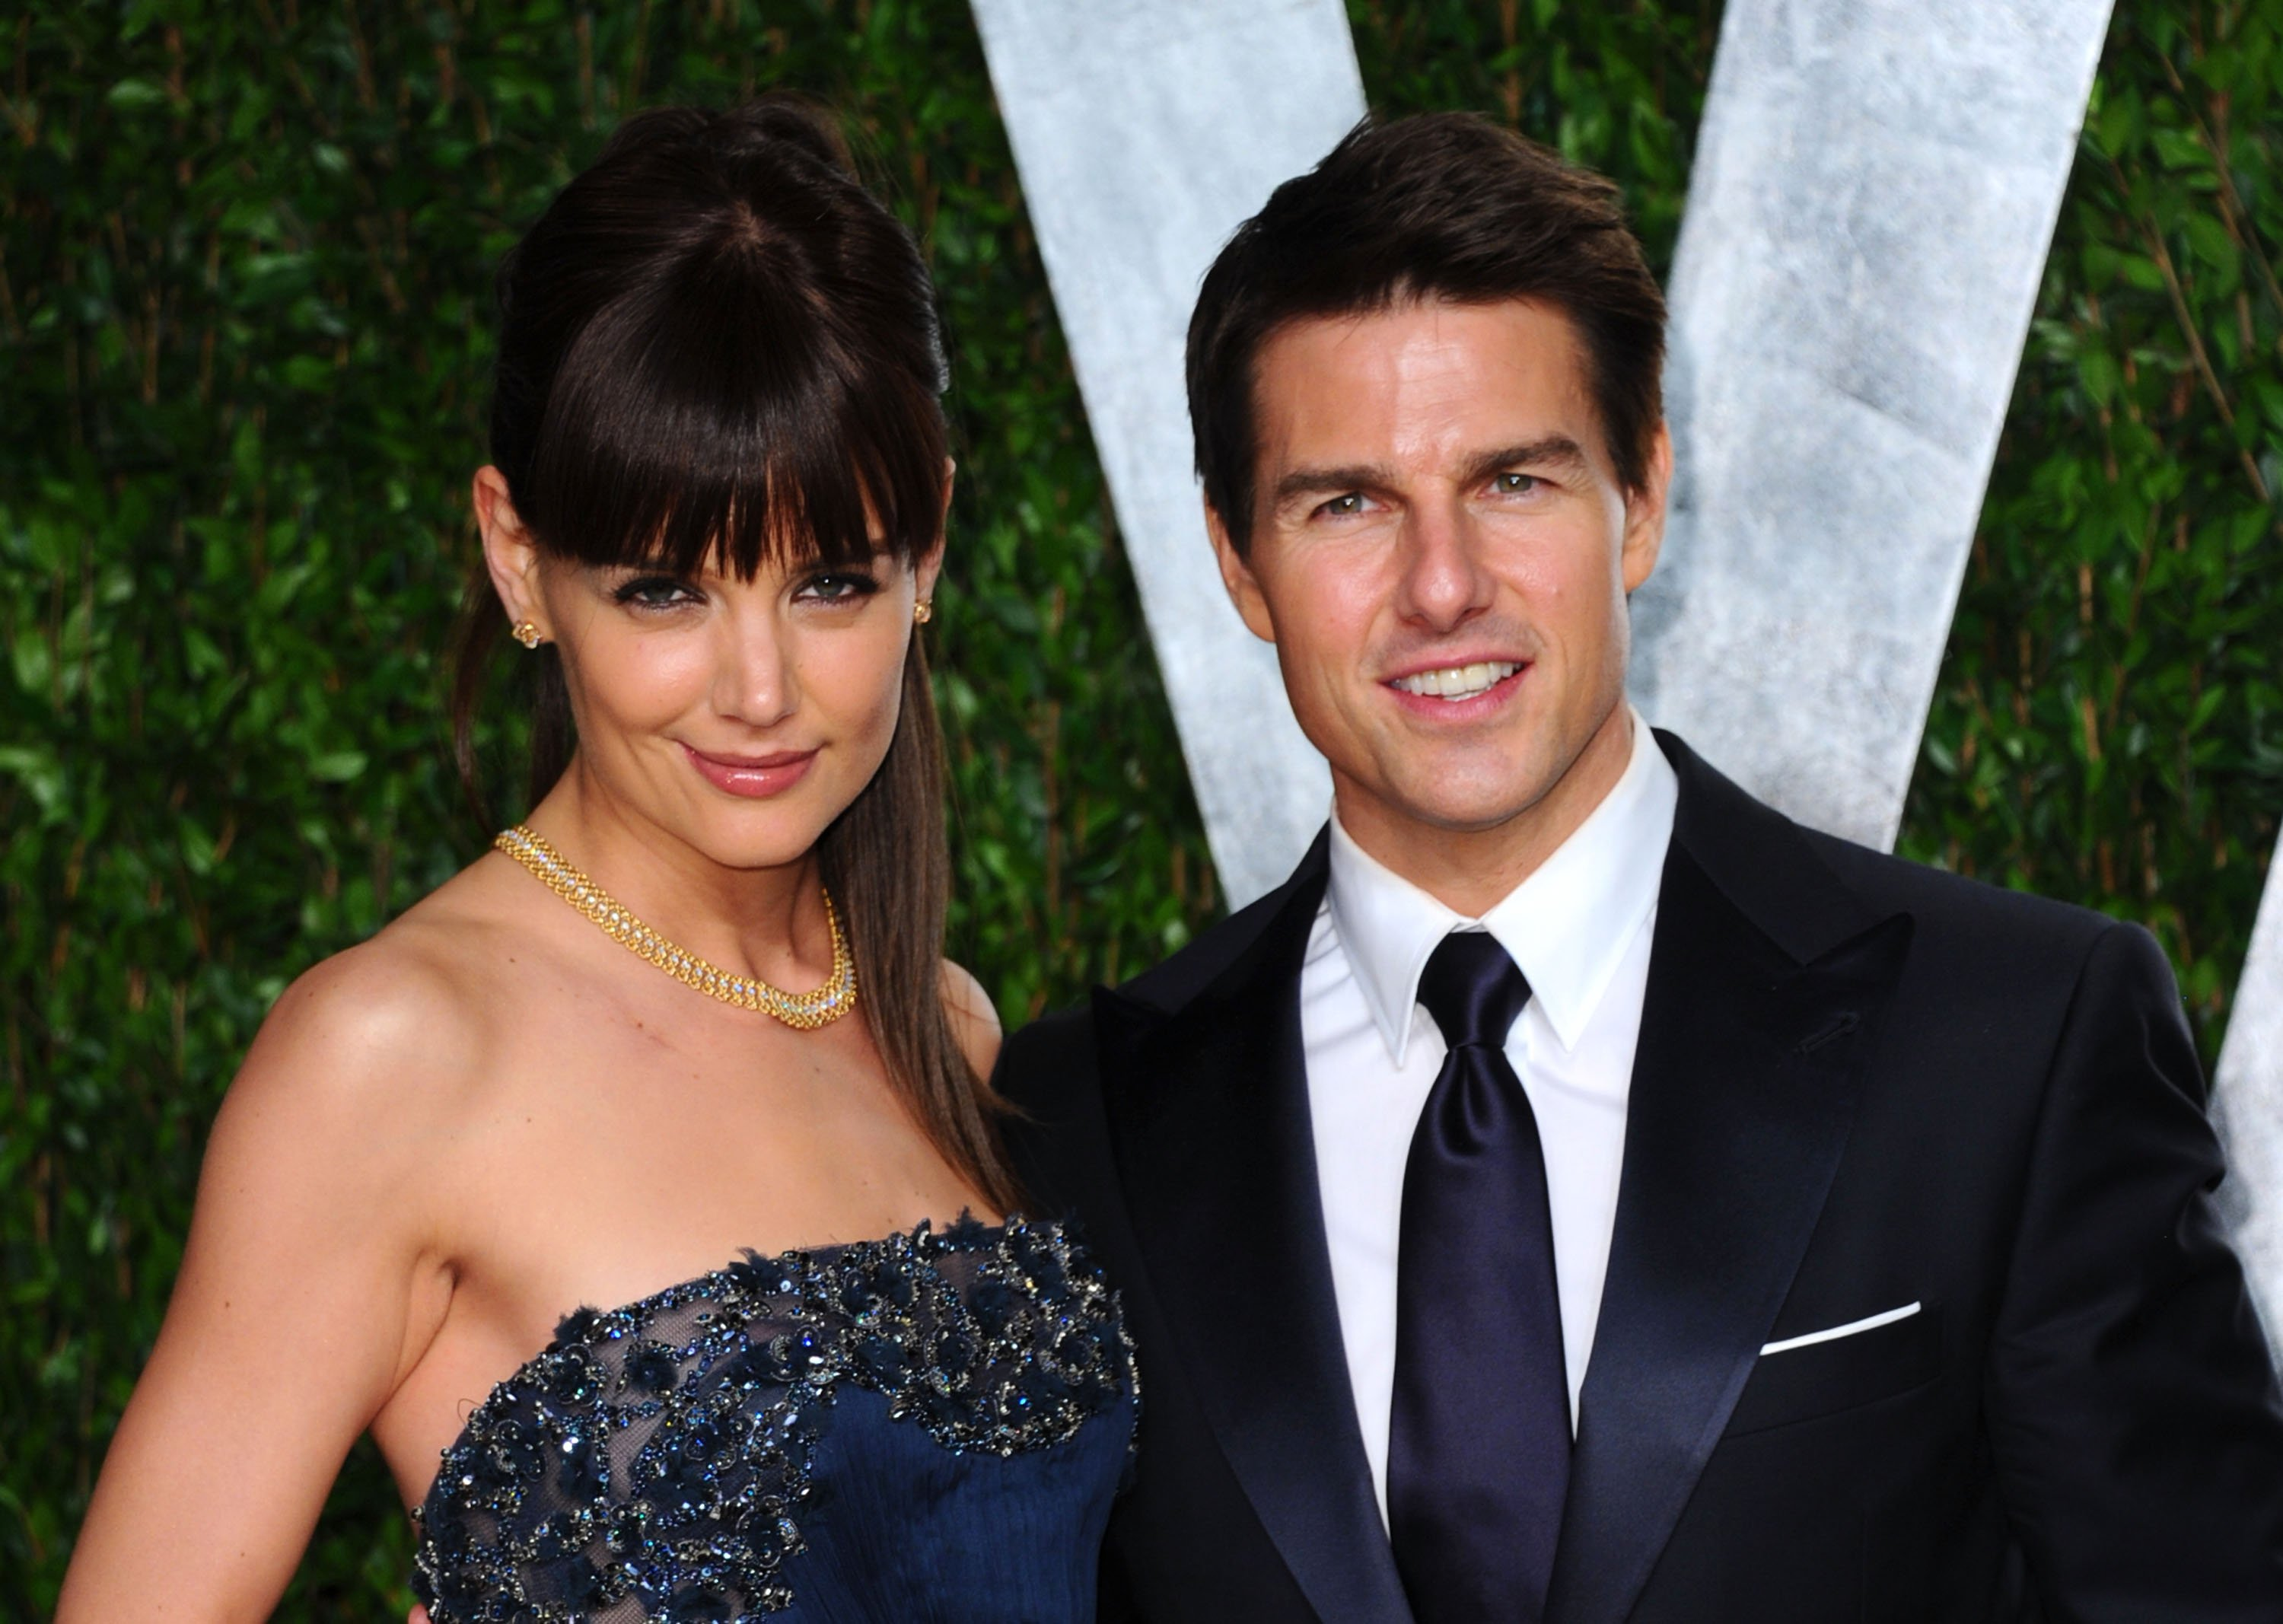 Actress Katie Holmes (L) and actor Tom Cruise arrives at the 2012 Vanity Fair Oscar Party on February 26, 2012, in West Hollywood, California. | Source: Getty Images.